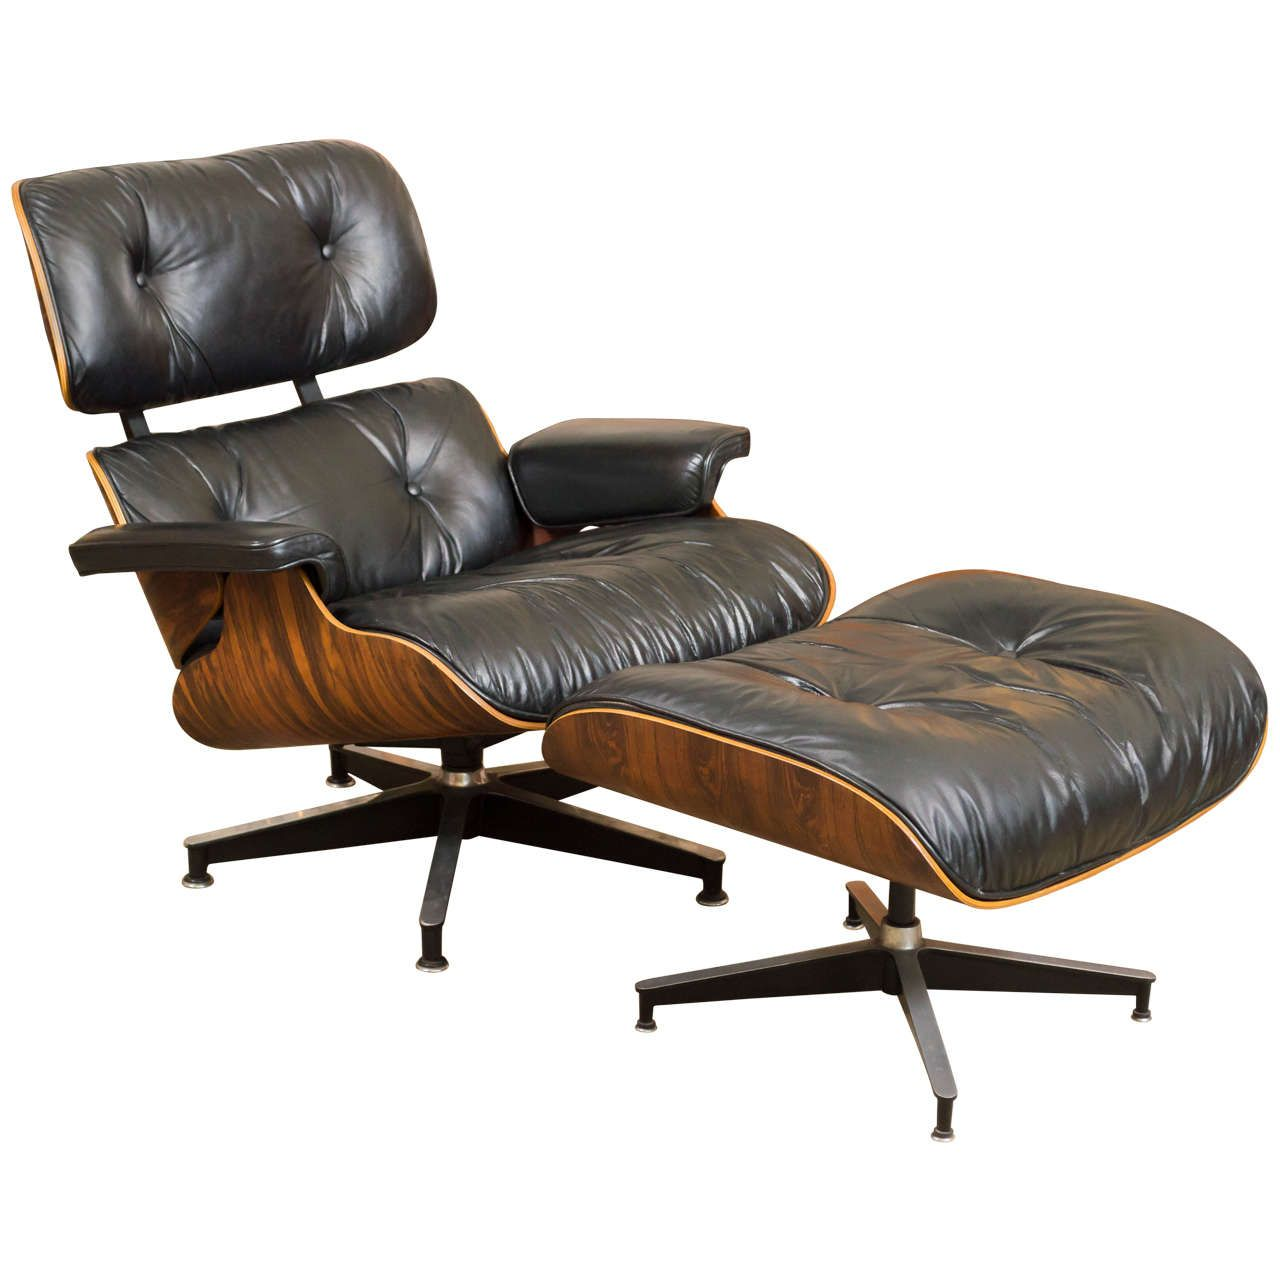 Exceptional Eames Rosewood Lounge Chair 670 And Ottoman 671 For Herman Miller |  1stdibs.com